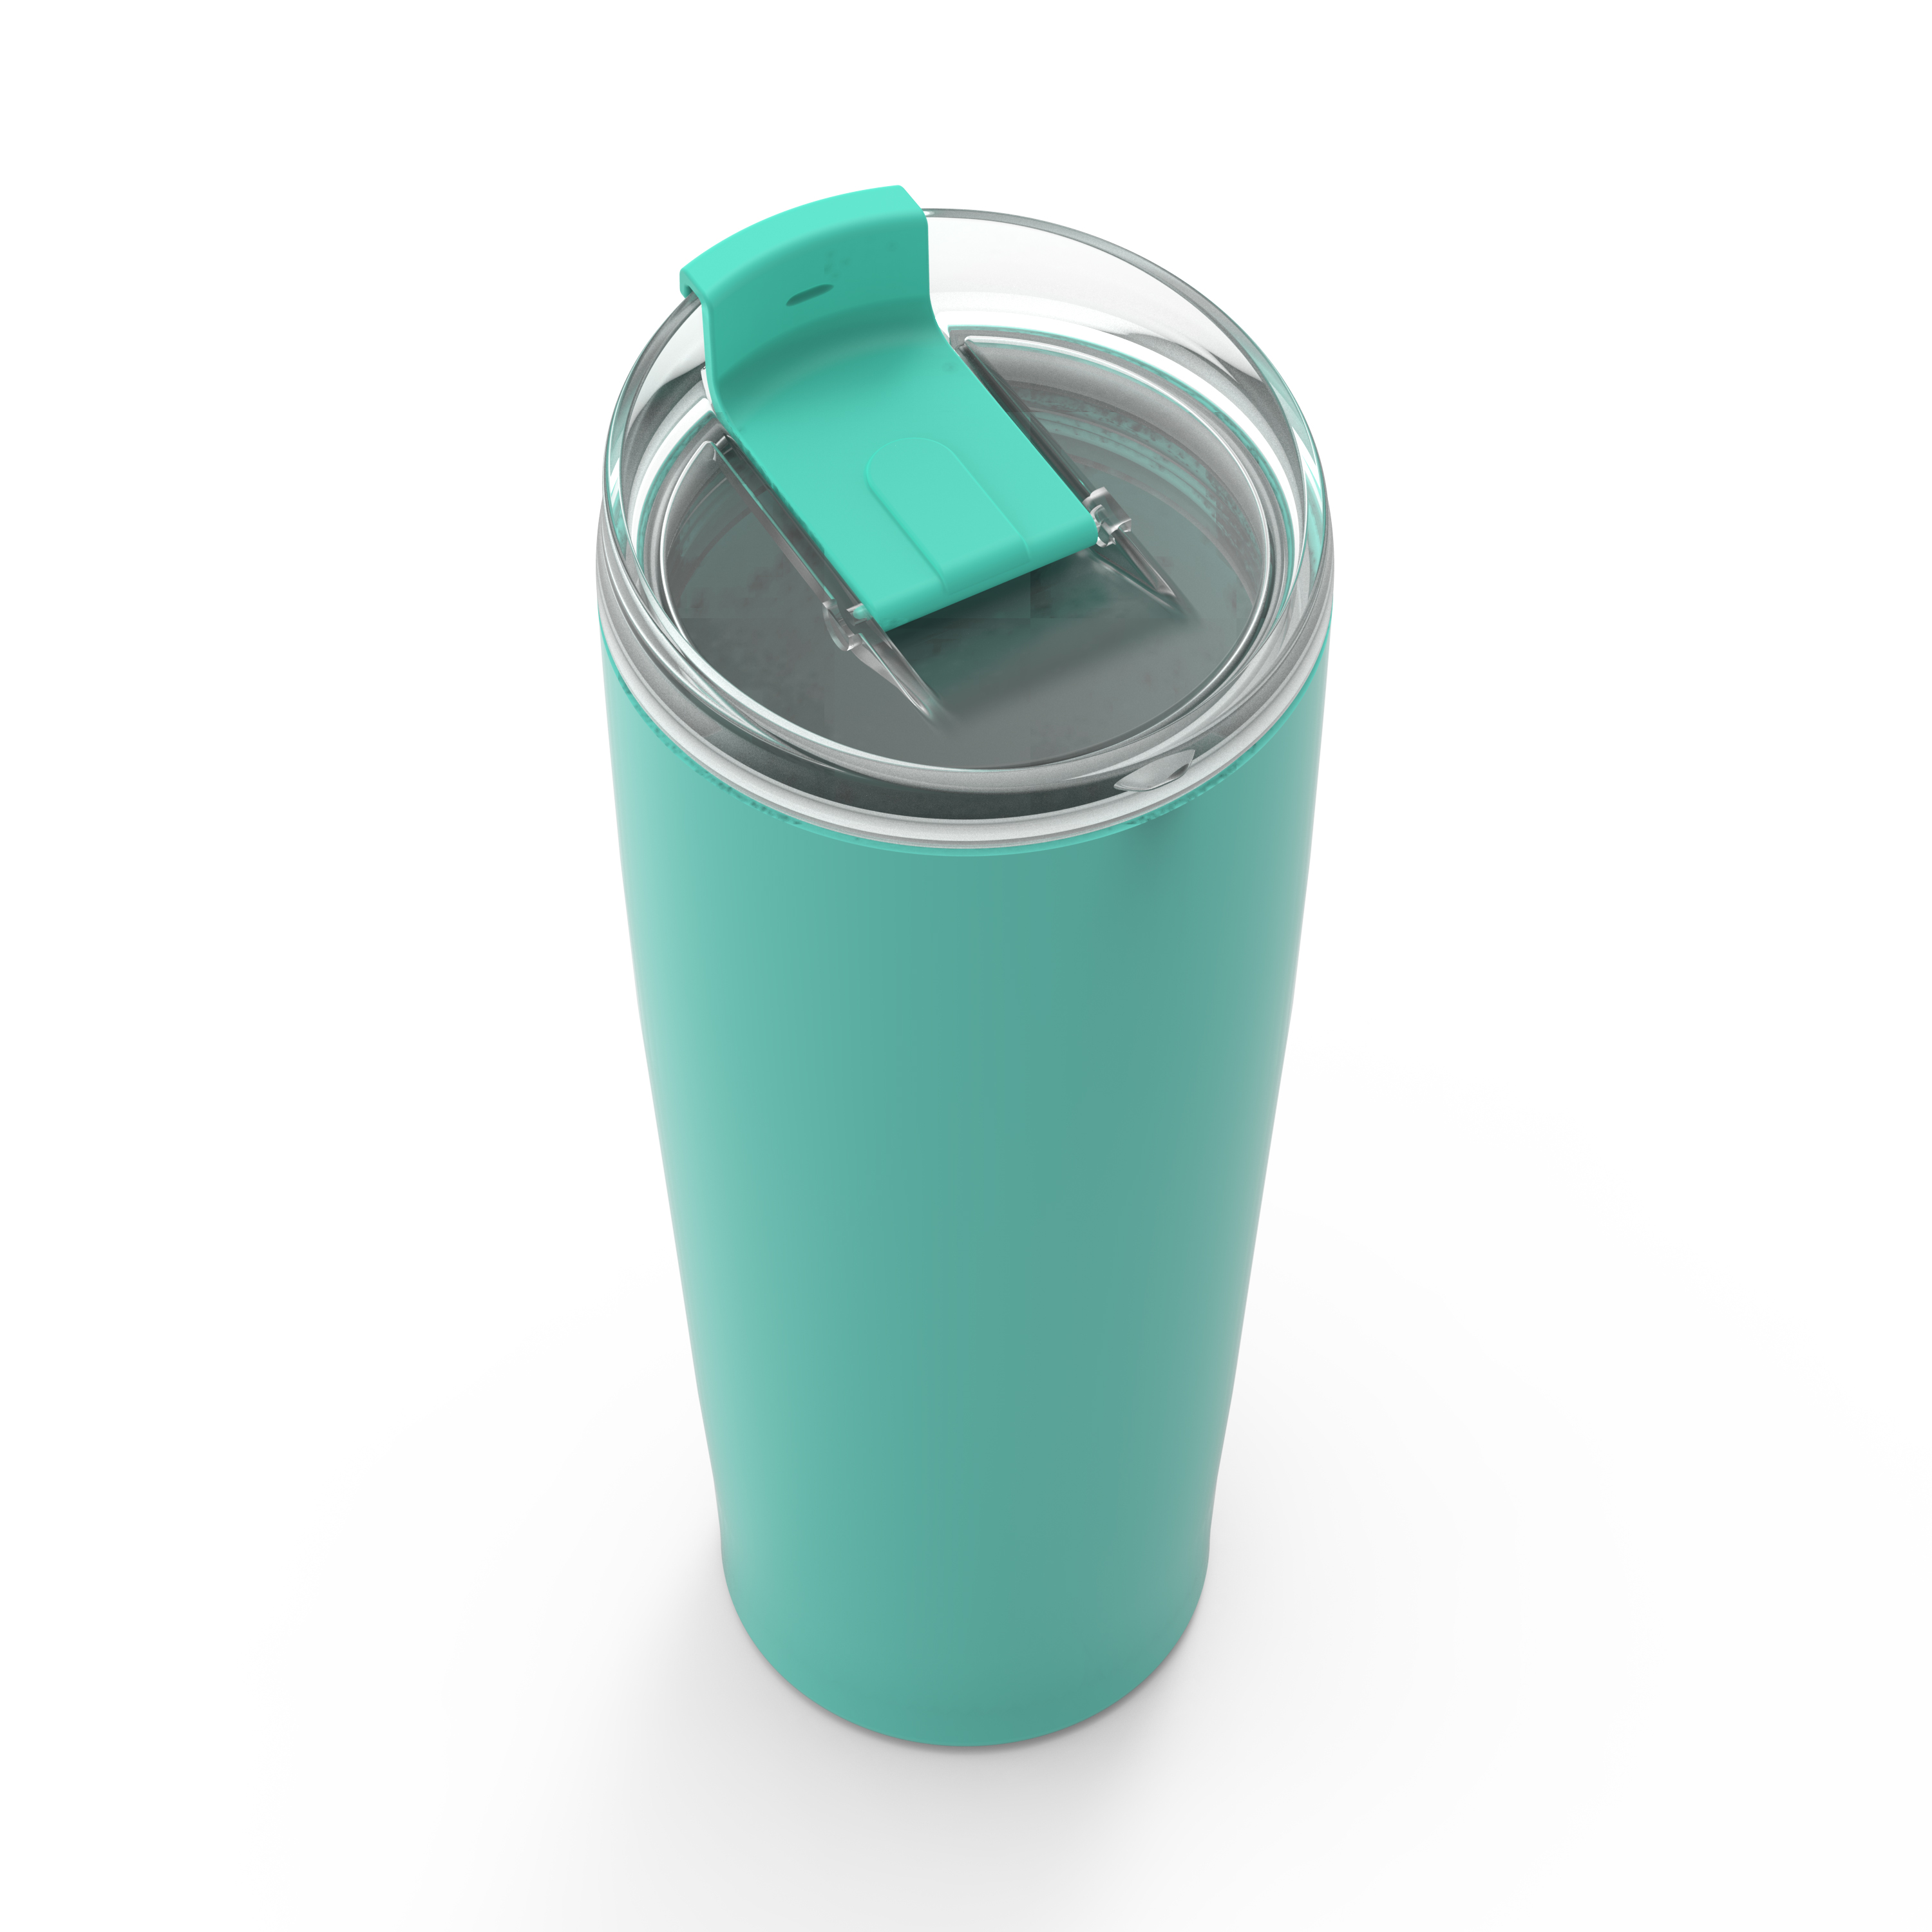 Aberdeen 30 ounce Vacuum Insulated Stainless Steel Tumbler, Green slideshow image 2